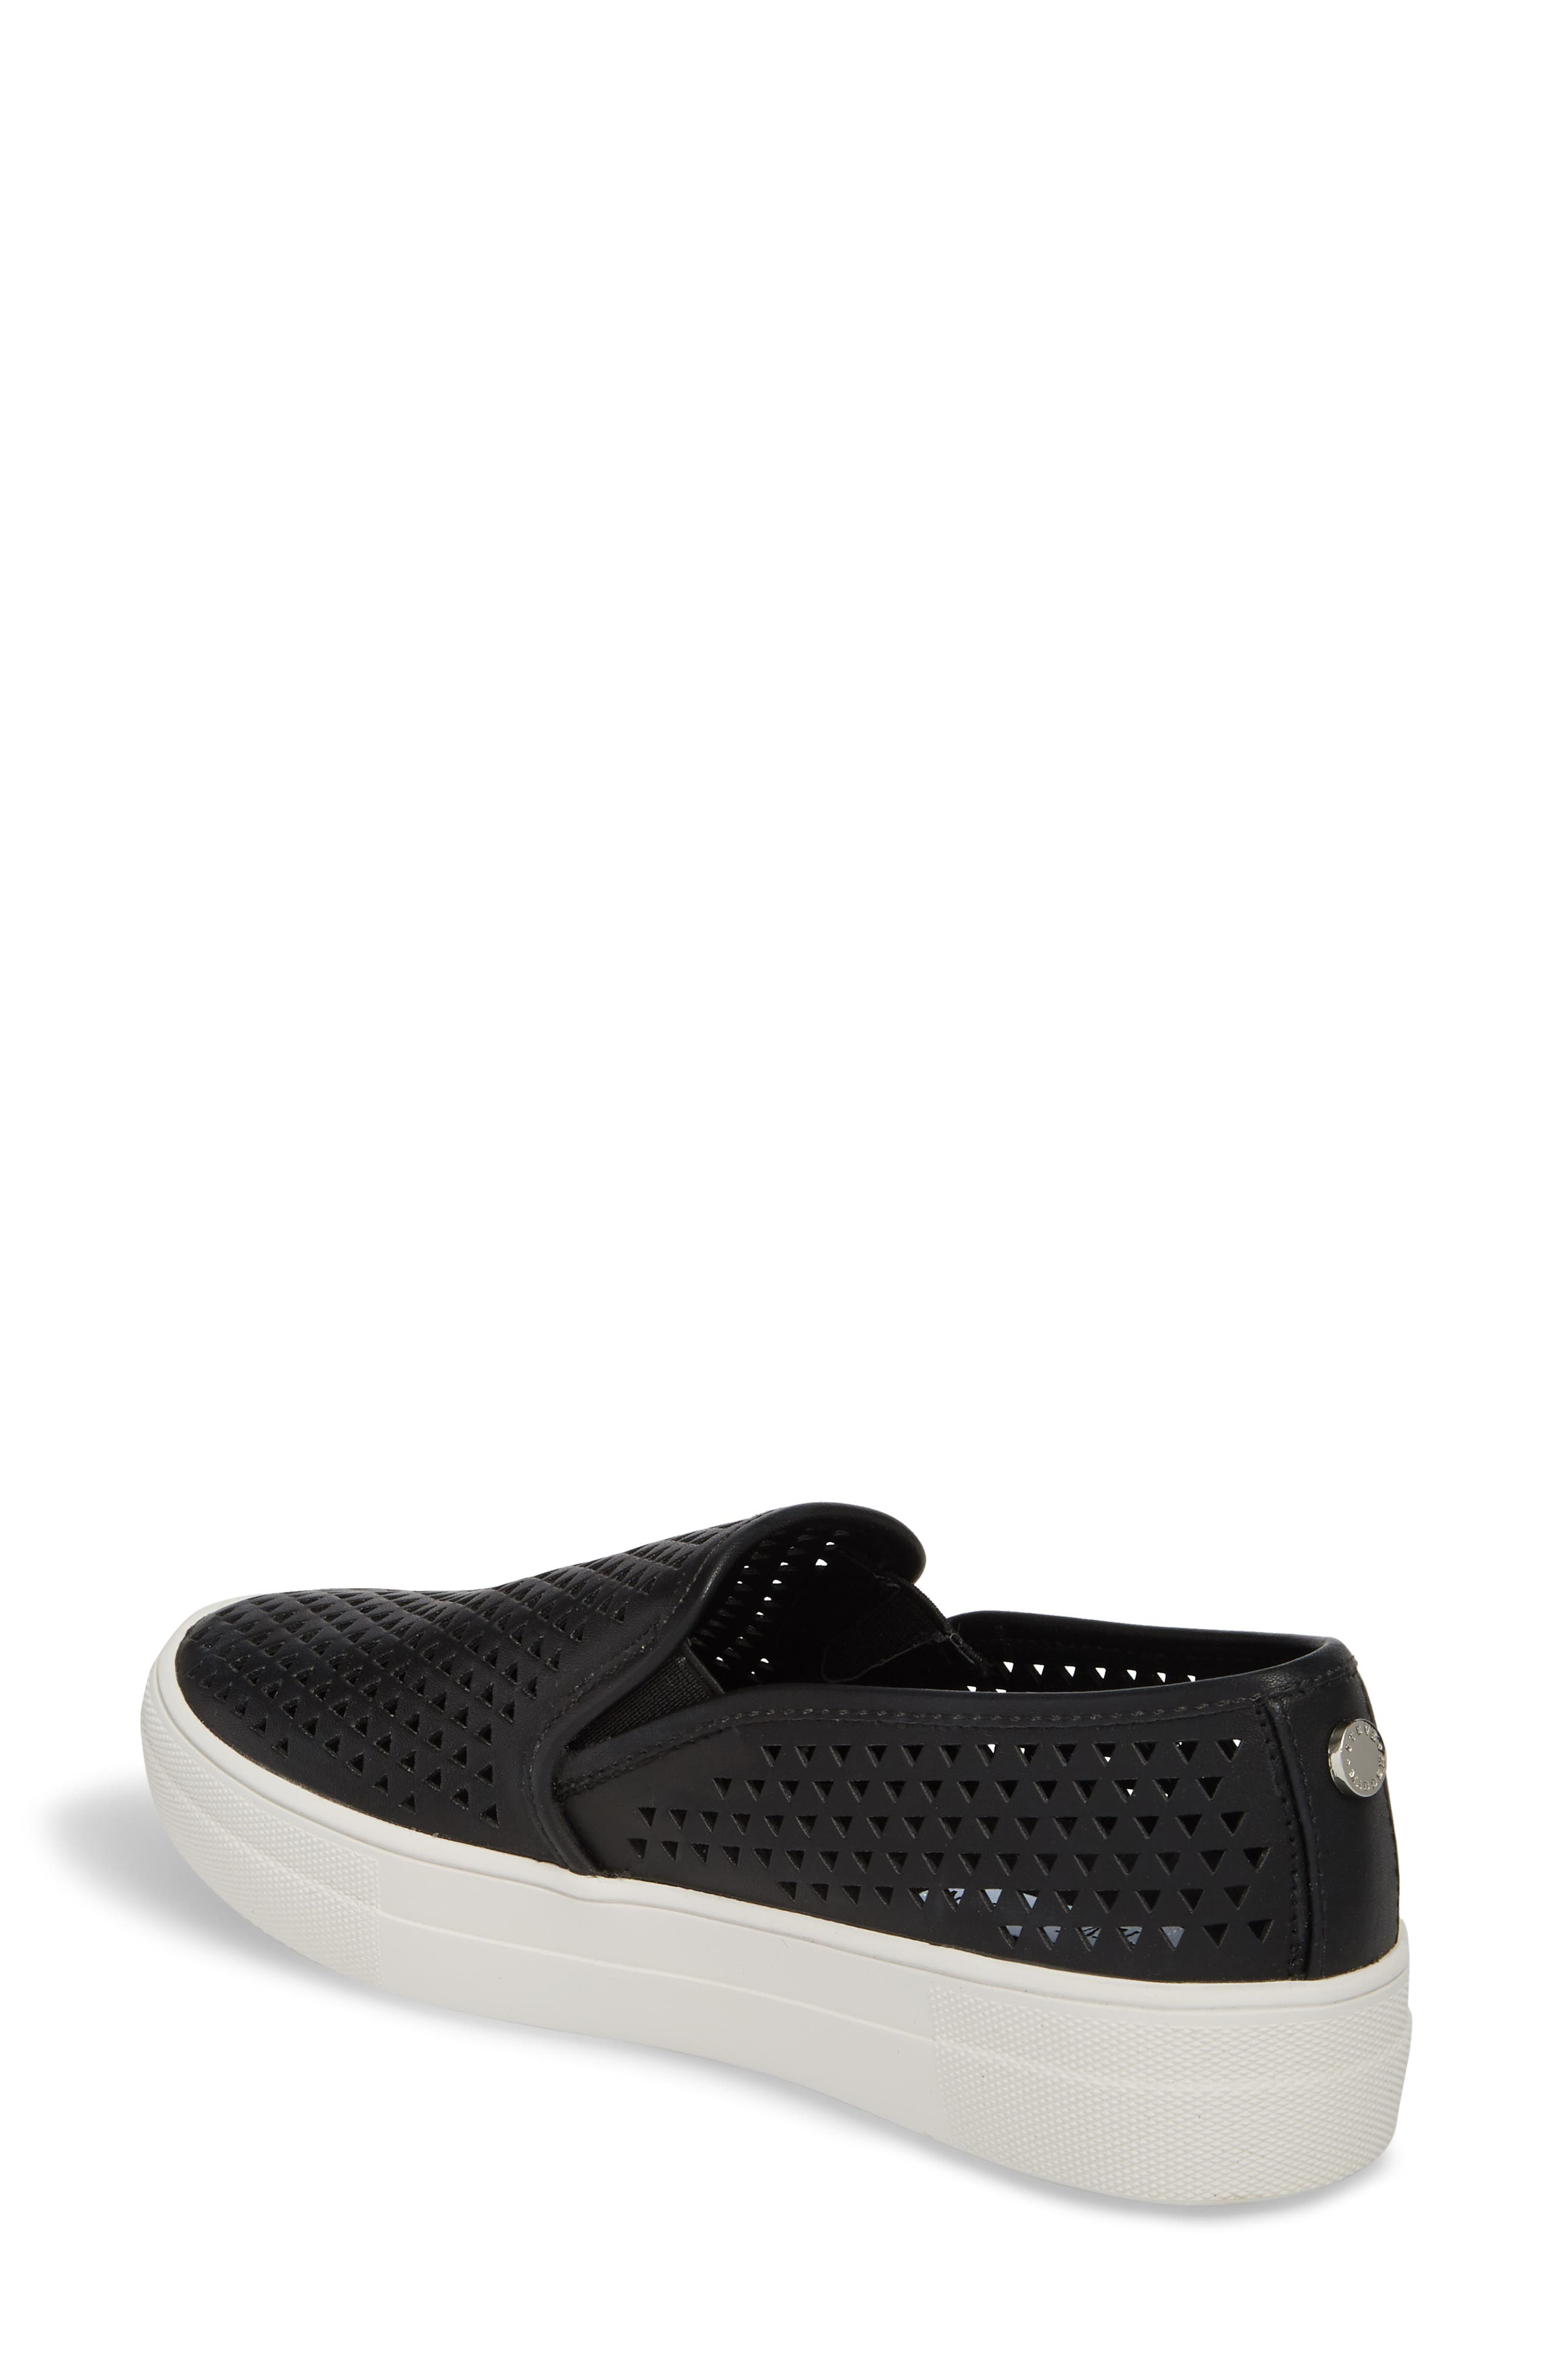 Gal-P Perforated Slip-On Sneaker,                             Alternate thumbnail 2, color,                             001